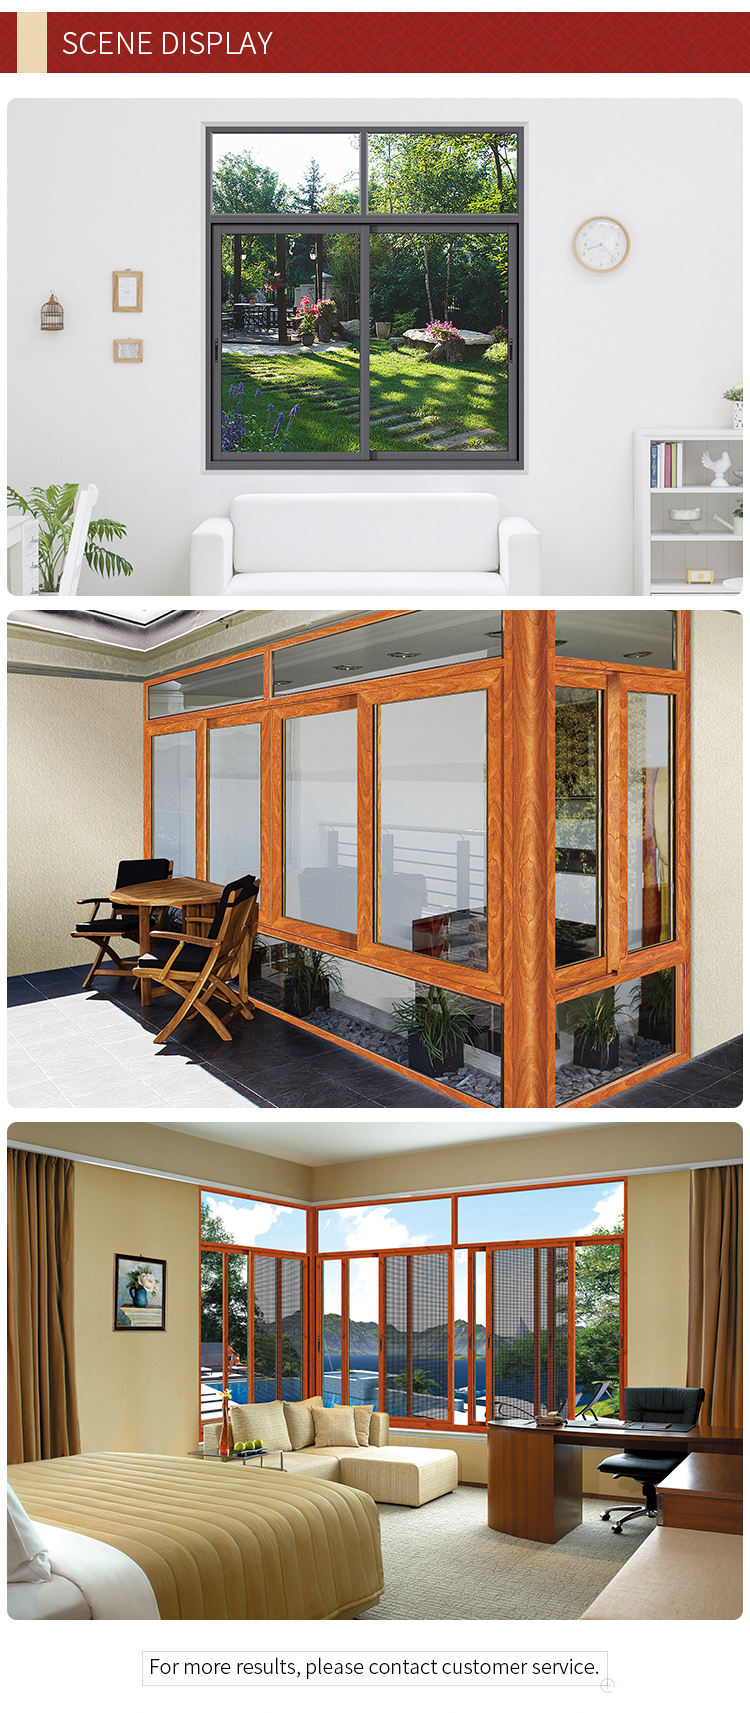 grills design pictures for sliding windows with mosquito net